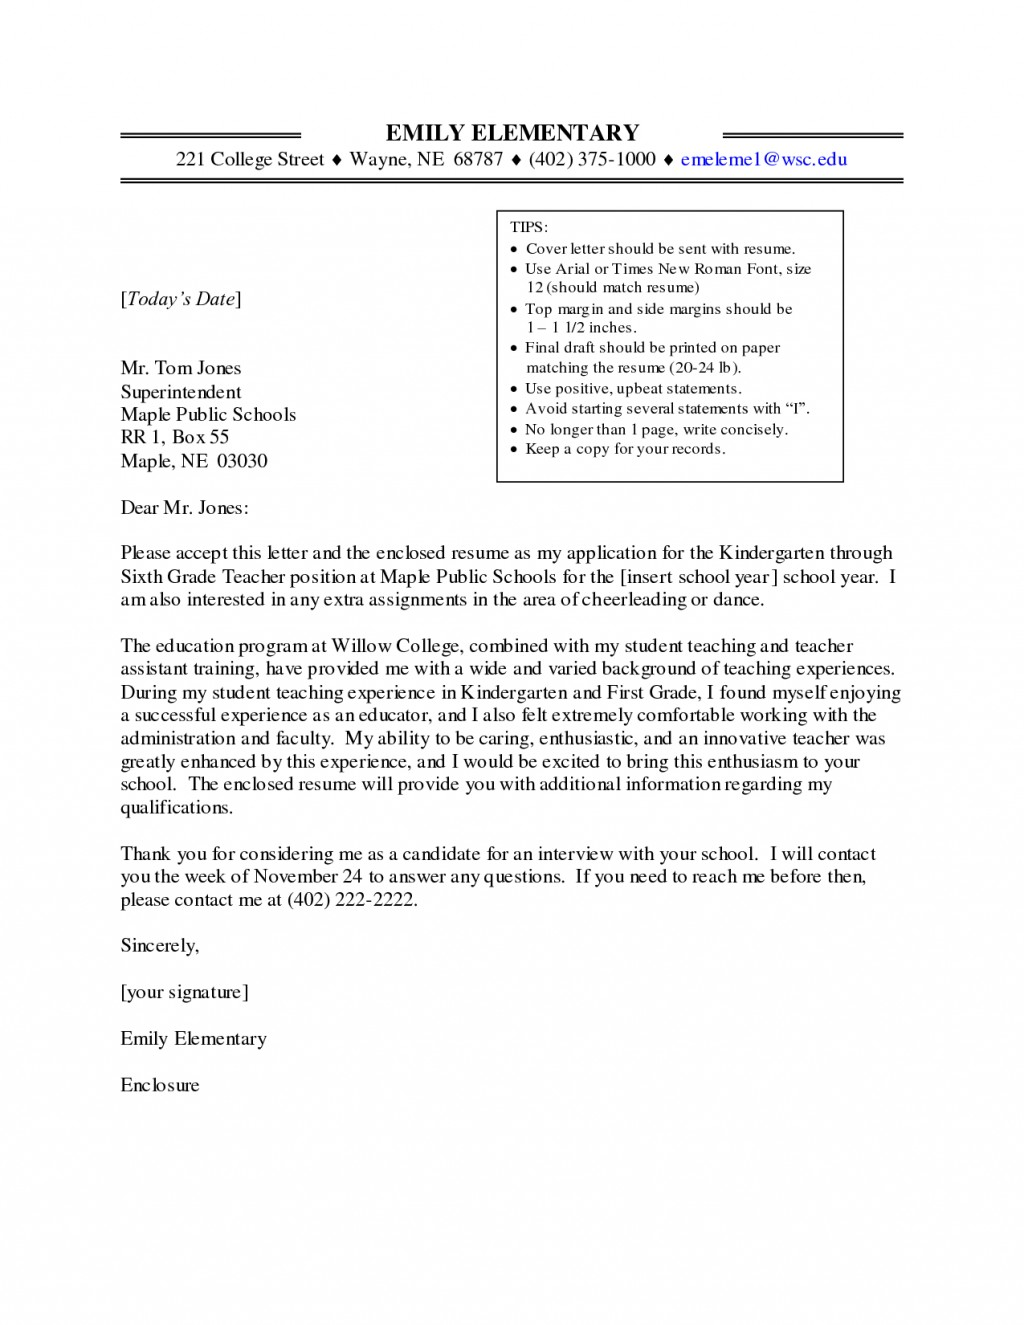 010 Essay Cover Letter Marvelous Sample College Examples Mla Large